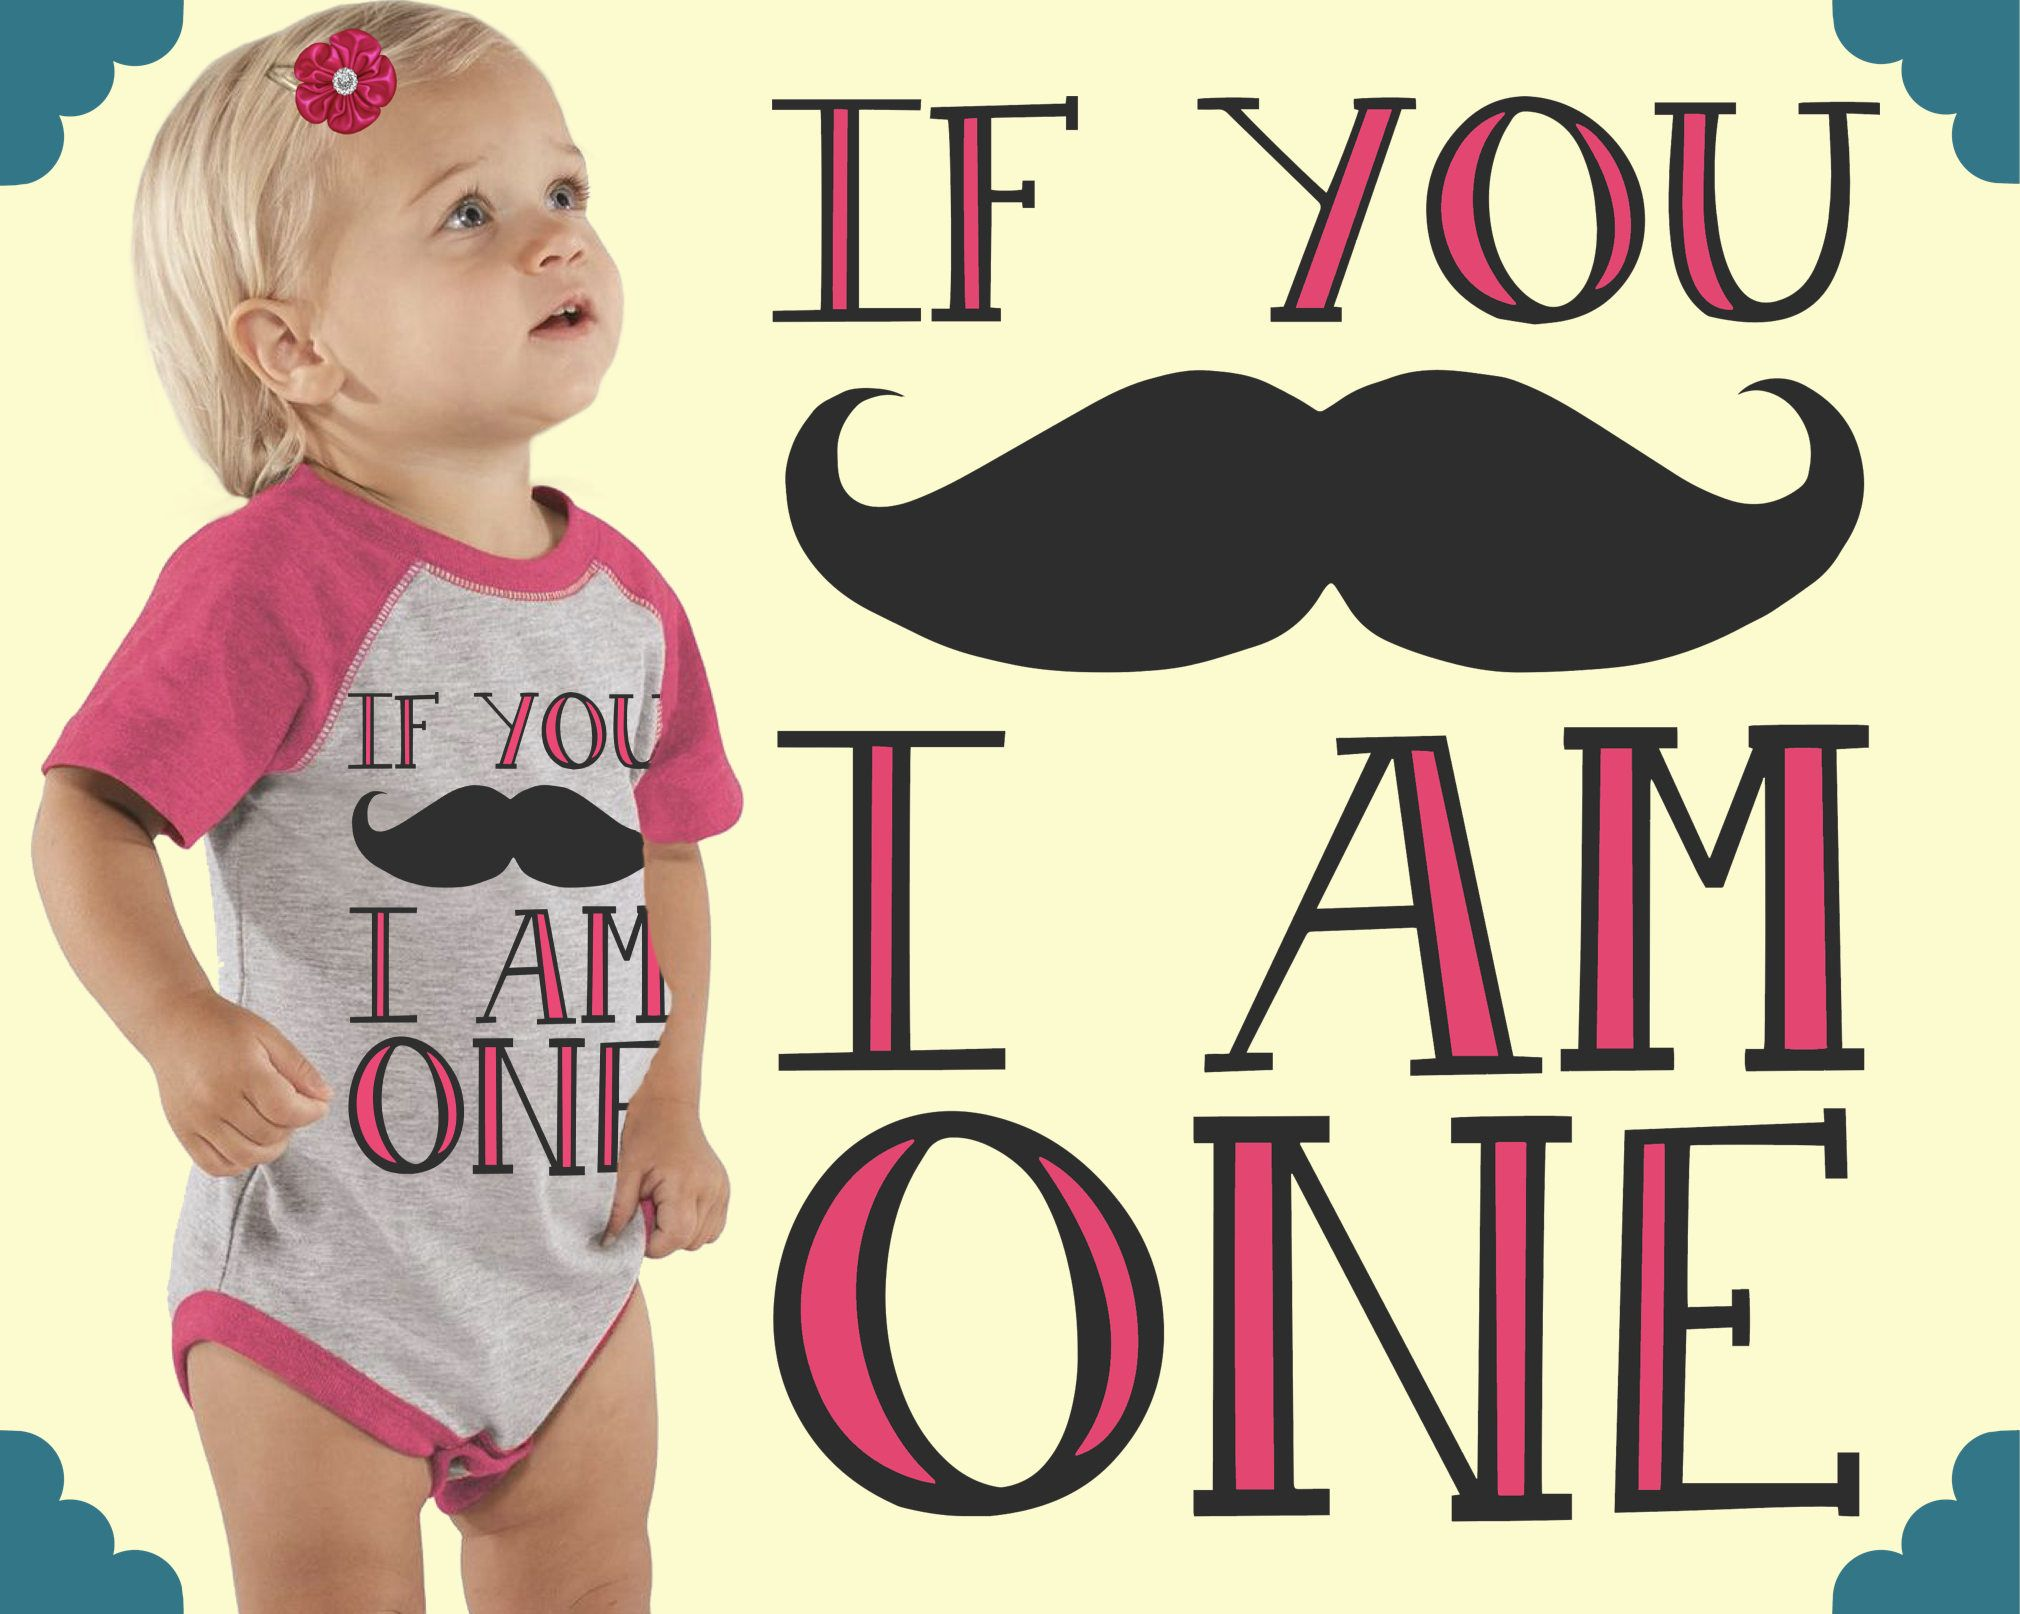 One year old mustache girl clothes personalized baby one year old mustache girl clothes personalized baby custom baby gift custom baby clothes kids tshirt teal blvd negle Gallery